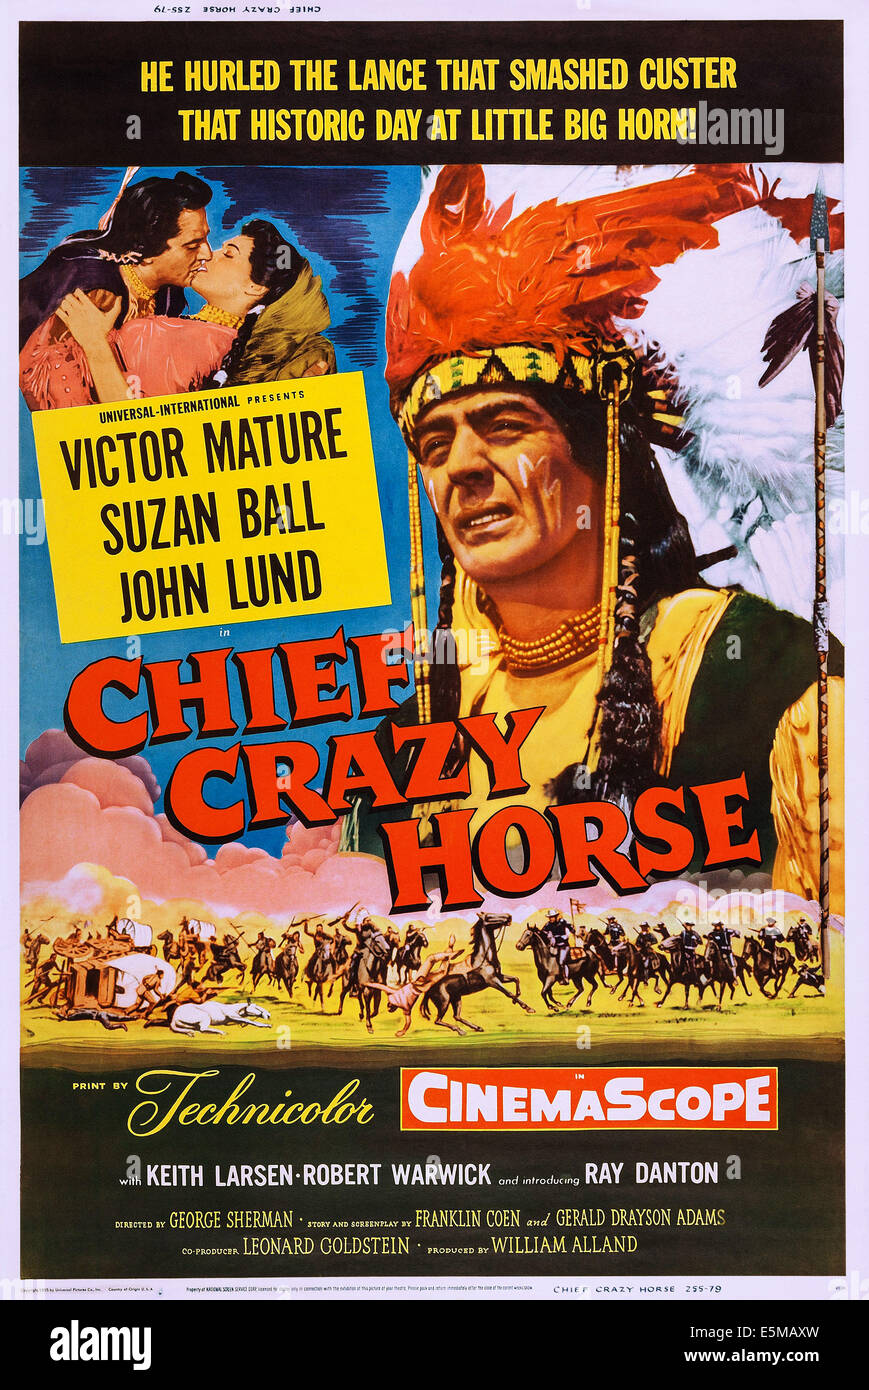 CHIEF CRAZY HORSE, US poster, from left: Victor Mature, Suzan Ball, Victor Mature, 1955 - Stock Image